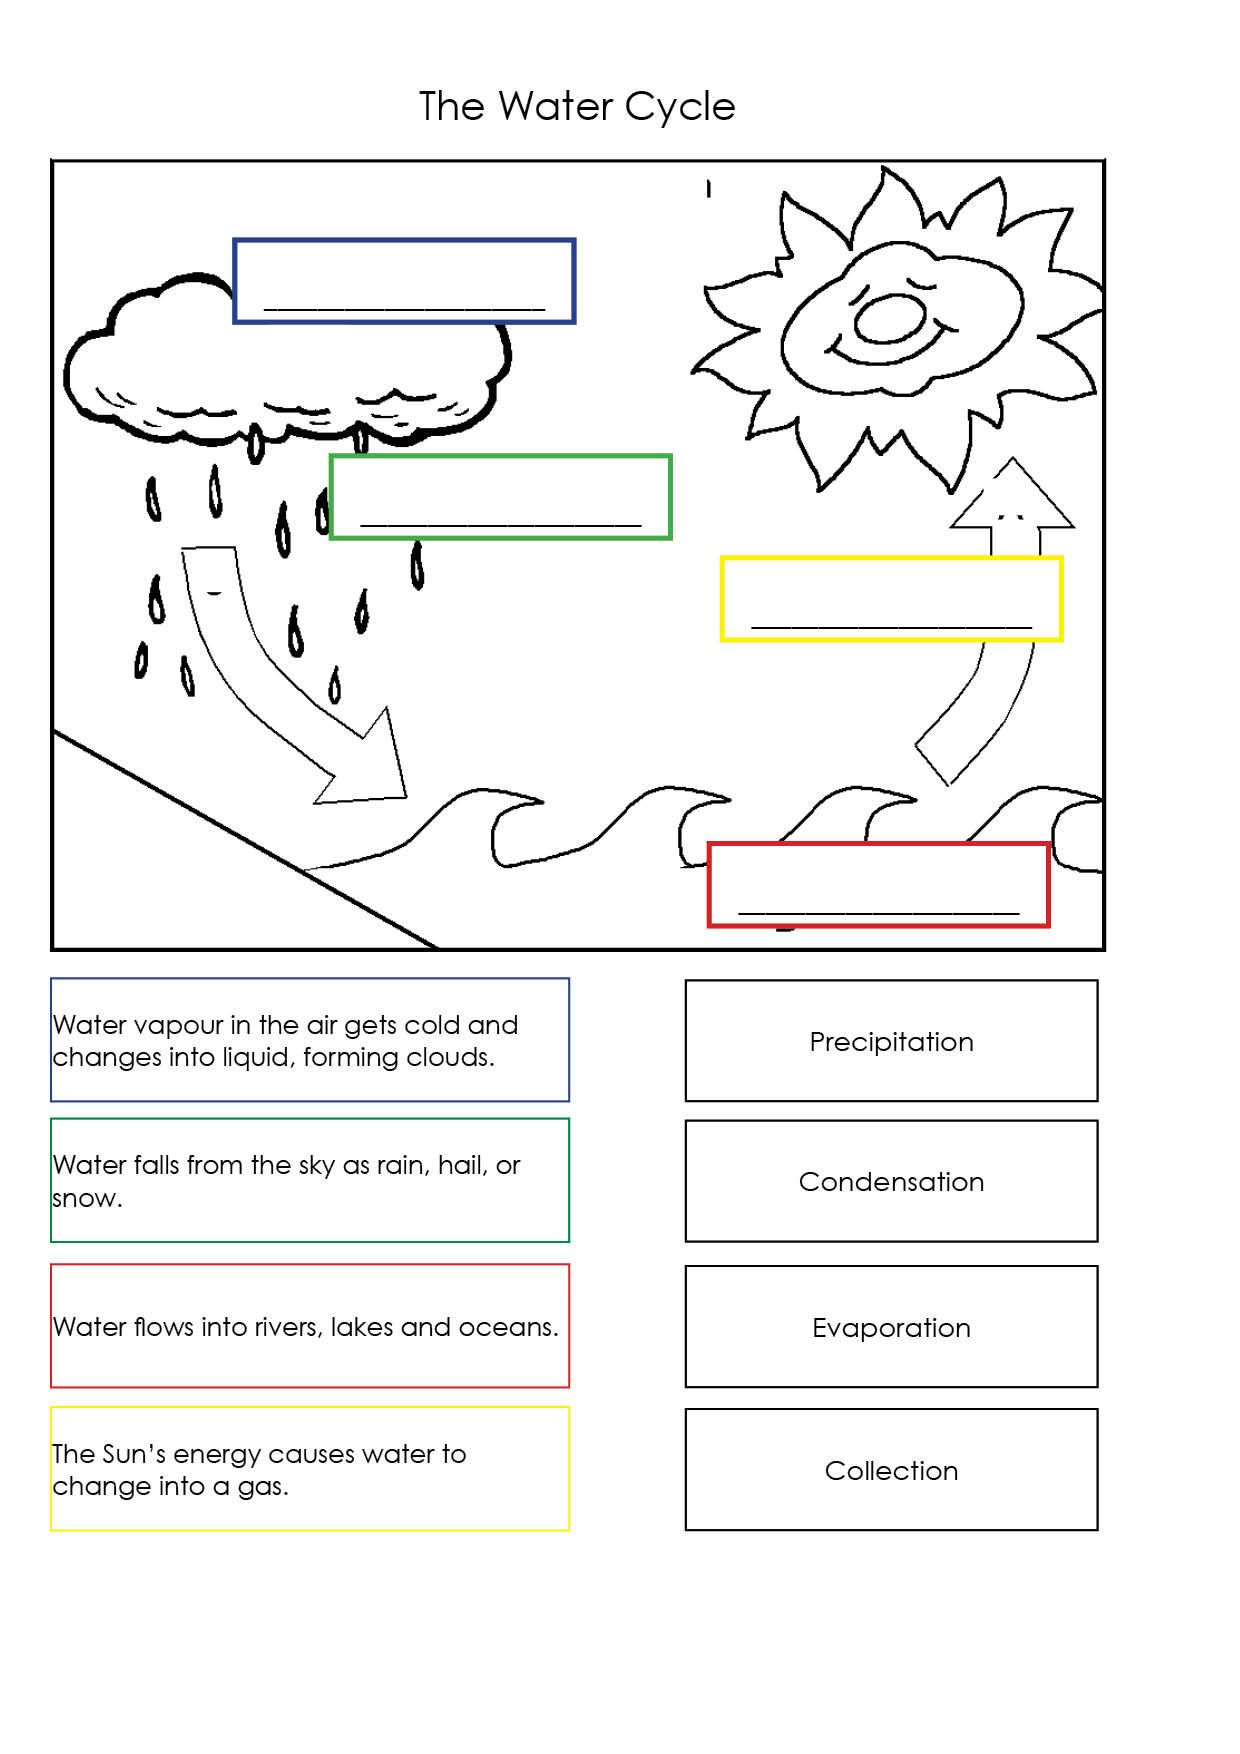 Plant Life Cycle Worksheet 3rd Grade Awesome Human Life Cycle Worksheets  the Best Worksheets Image Collect…   Water cycle worksheet [ 1754 x 1240 Pixel ]